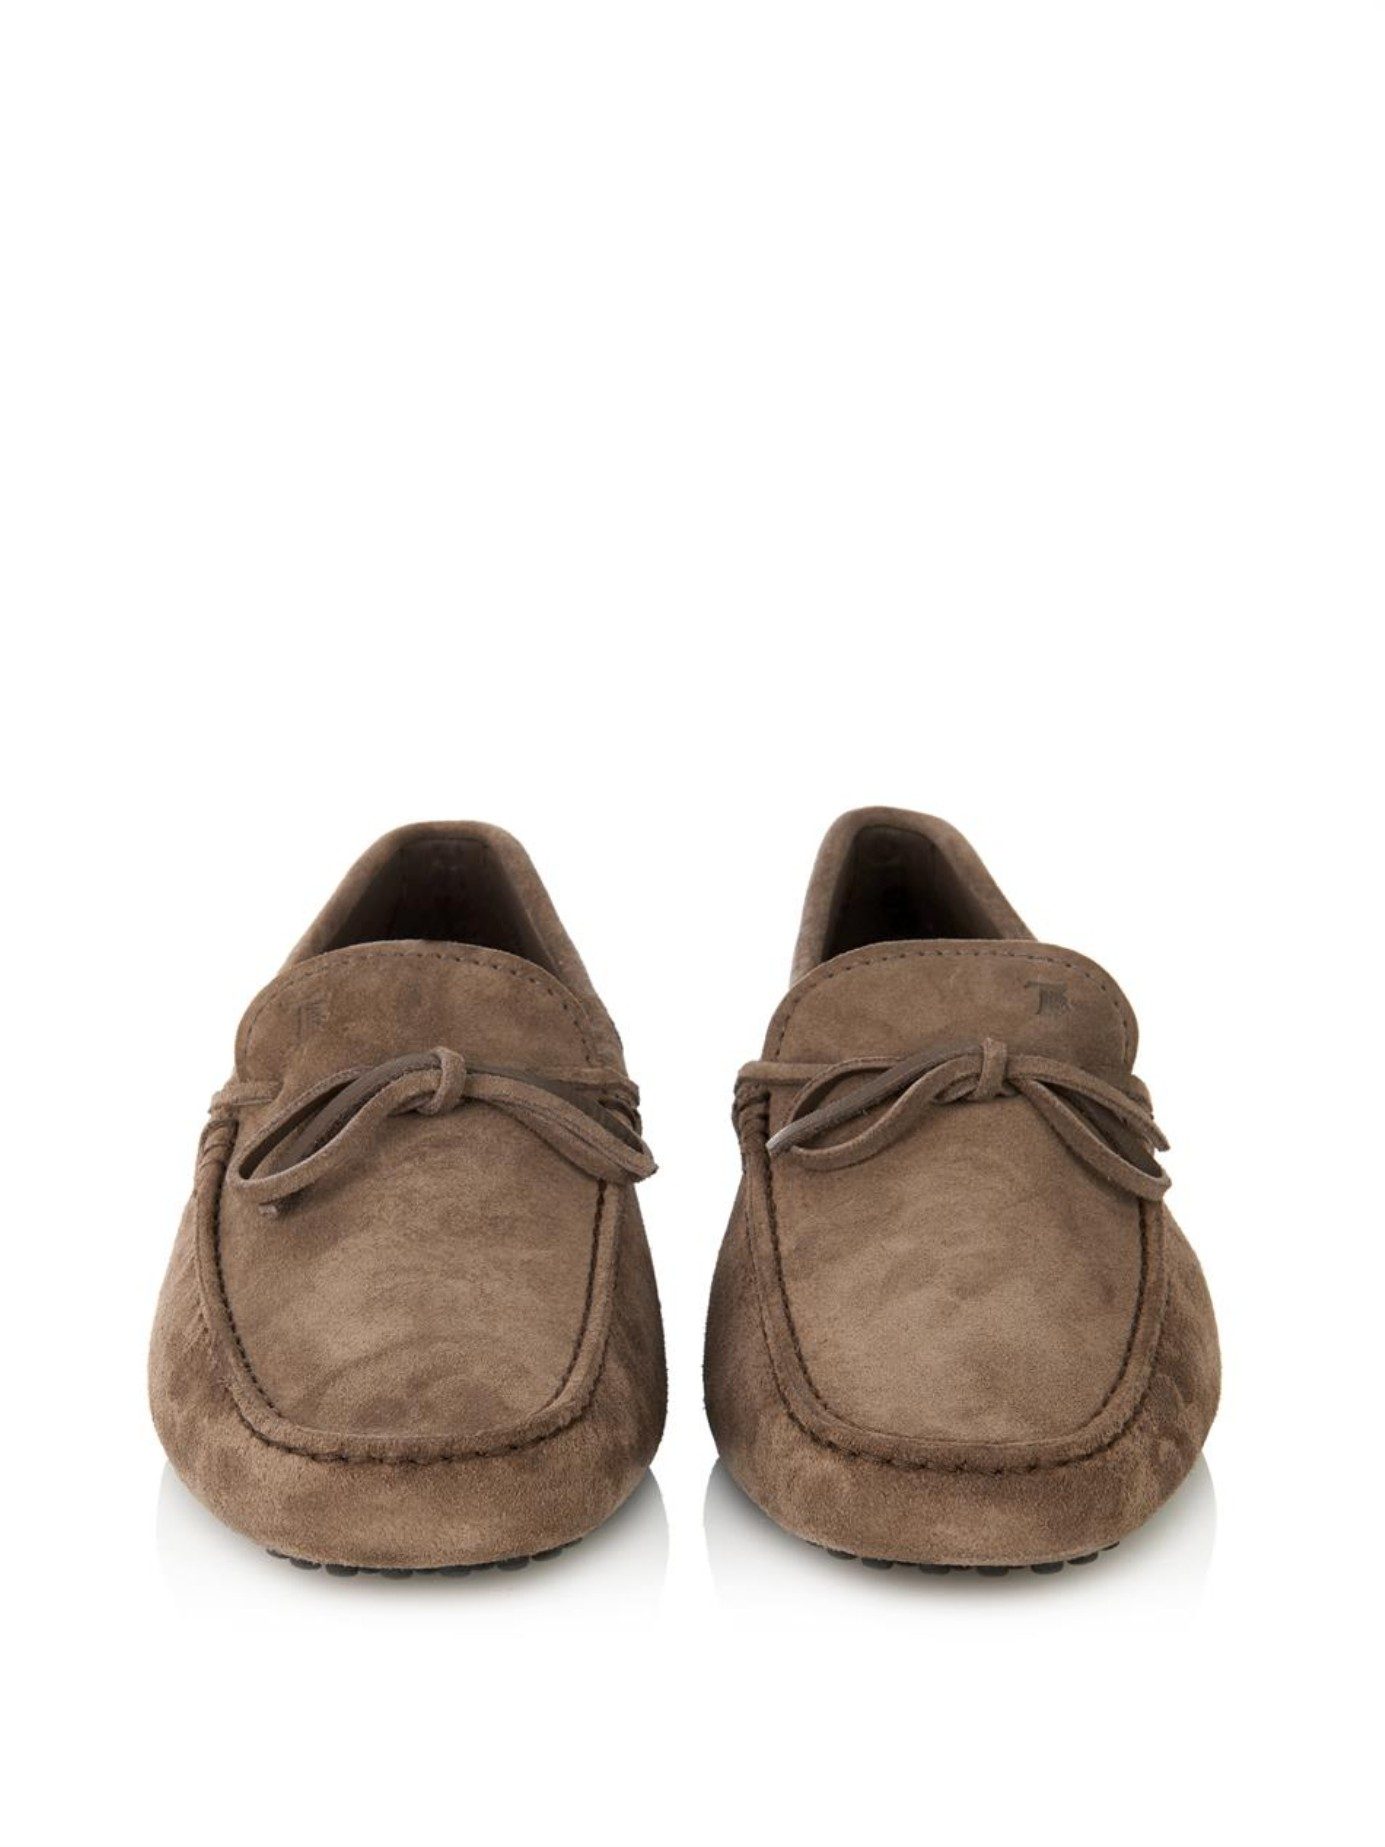 Gommino driving shoes - Brown Tod's Outlet Extremely Best Wholesale For Sale Free Shipping Official NTD9y4